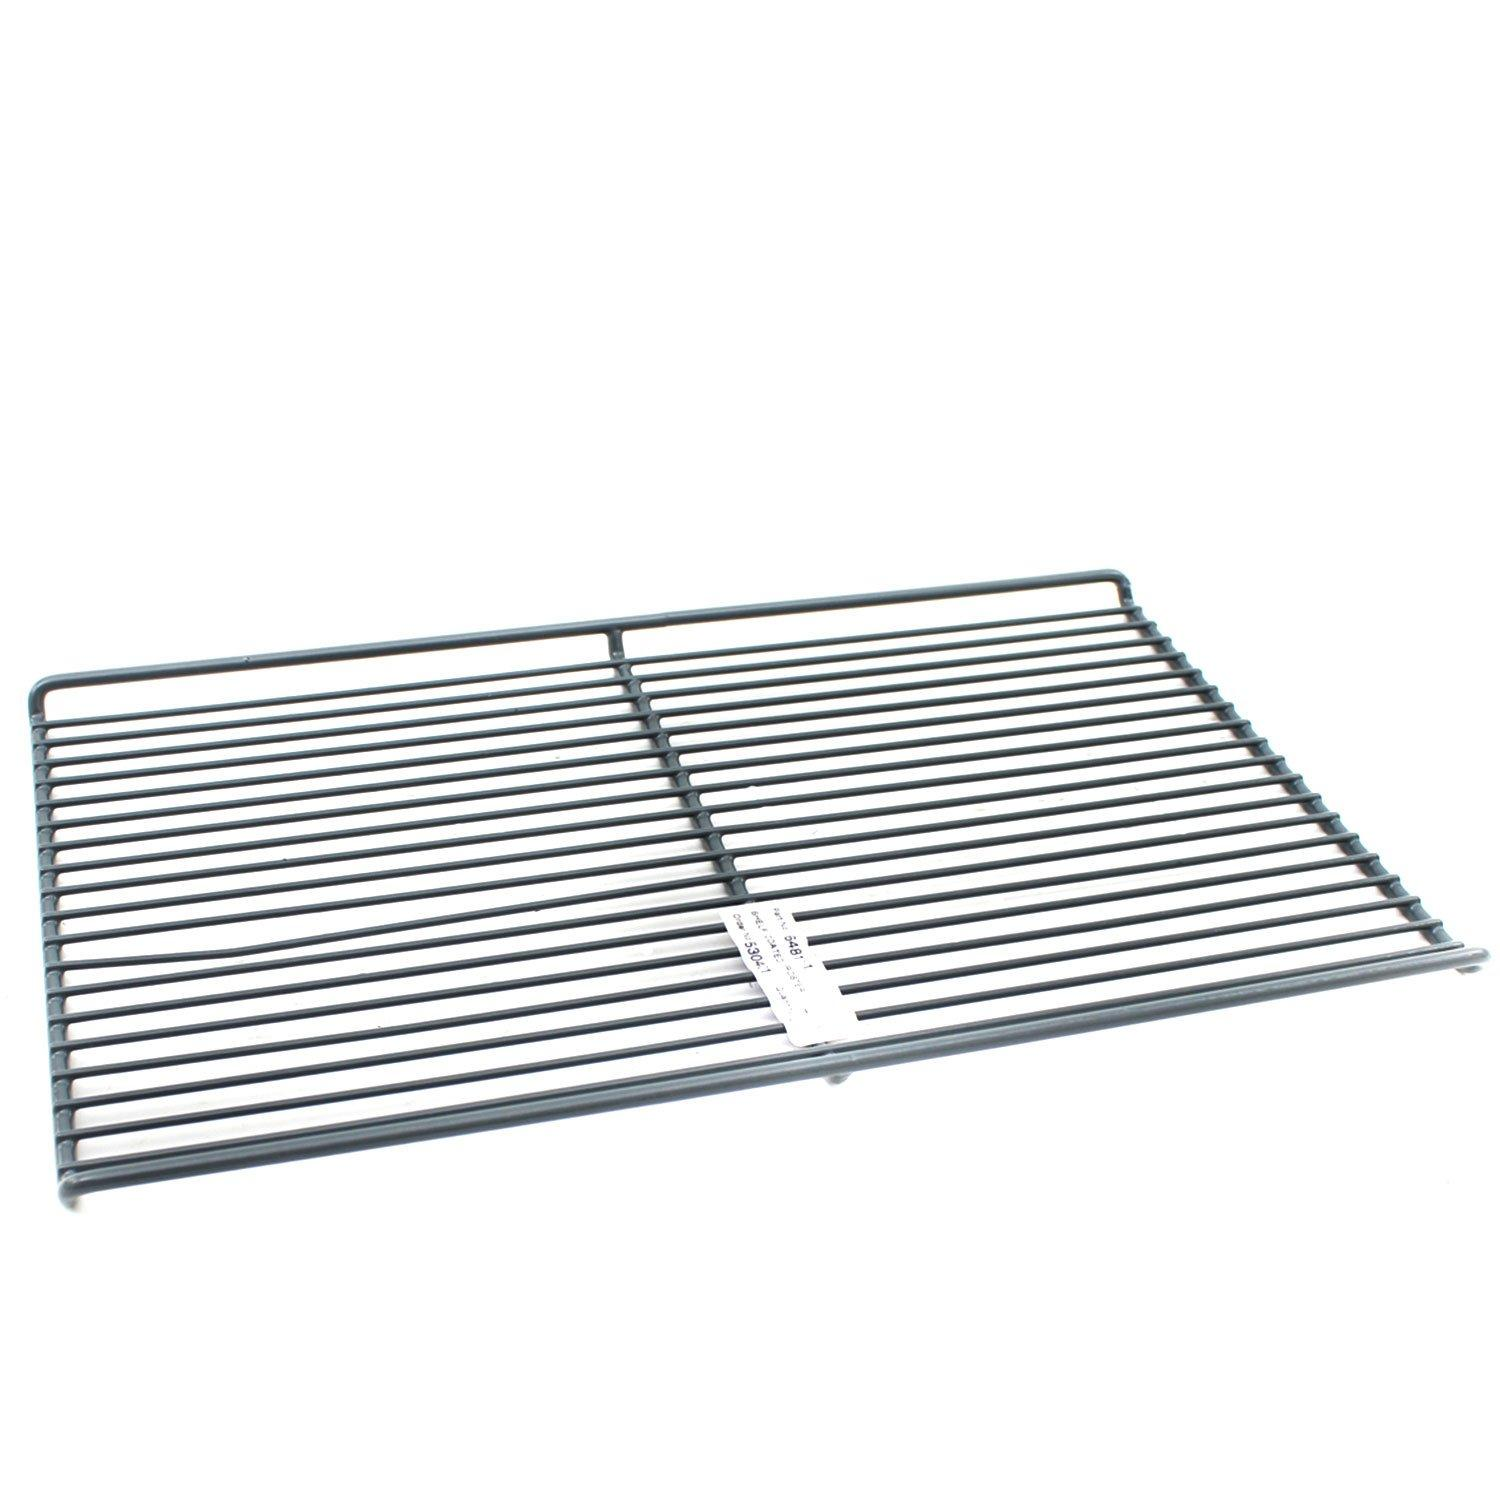 PERLICK SHELF, COATED, FROSTER